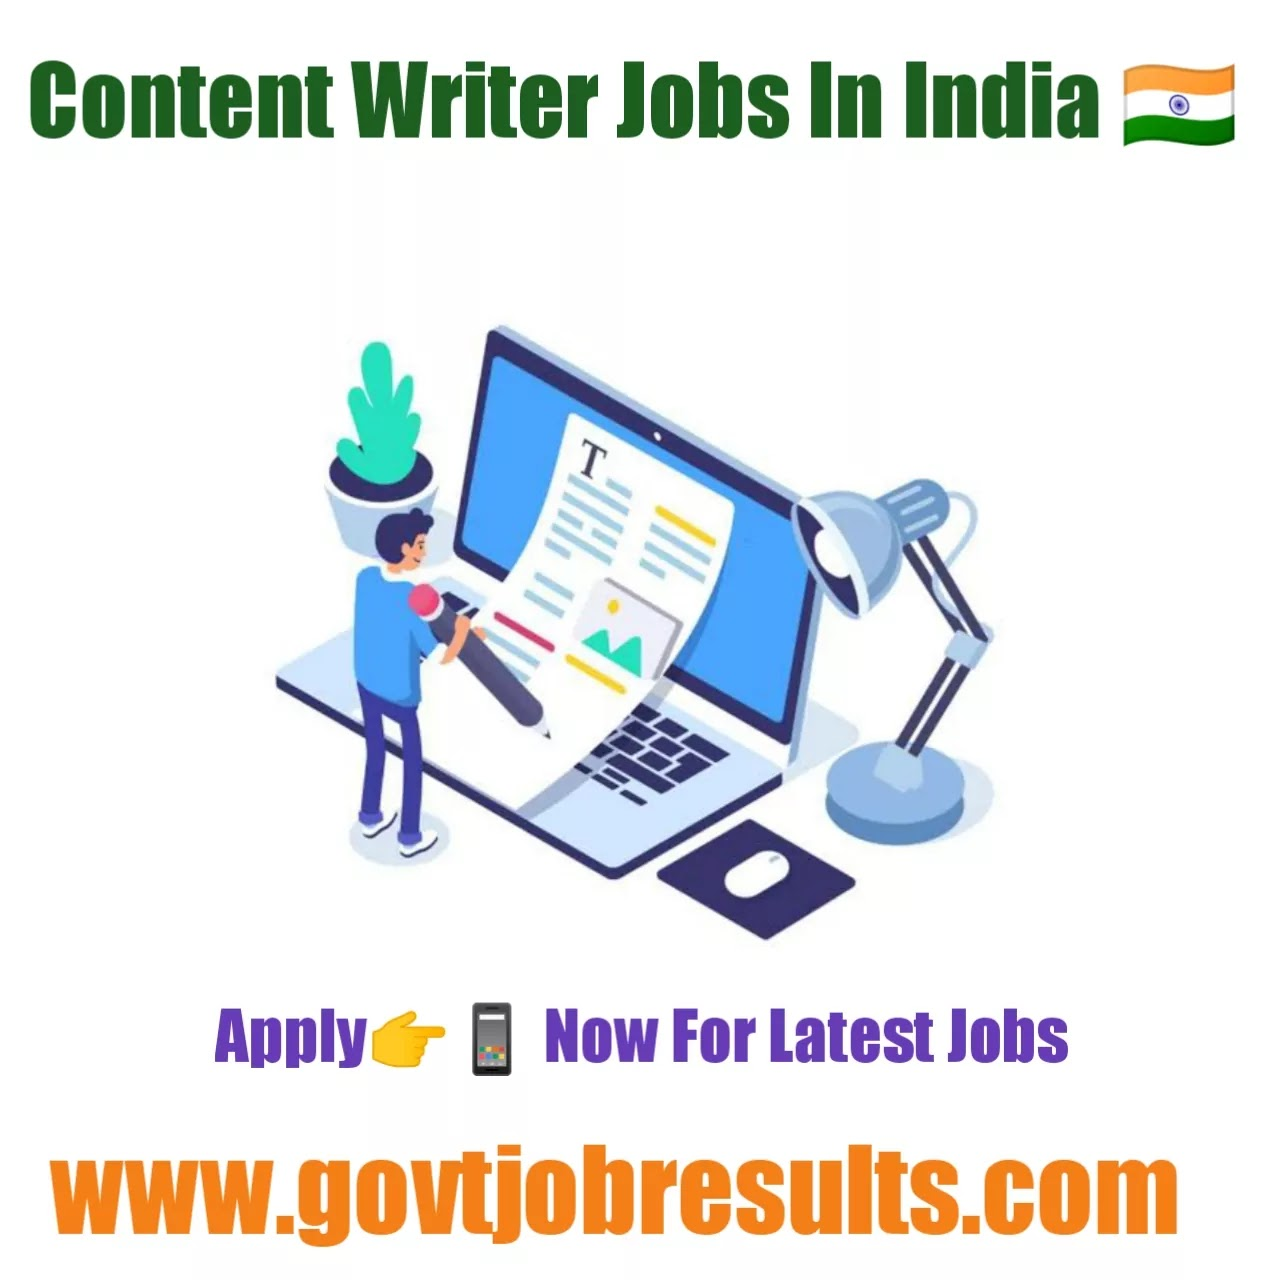 Content Writer Jobs in India